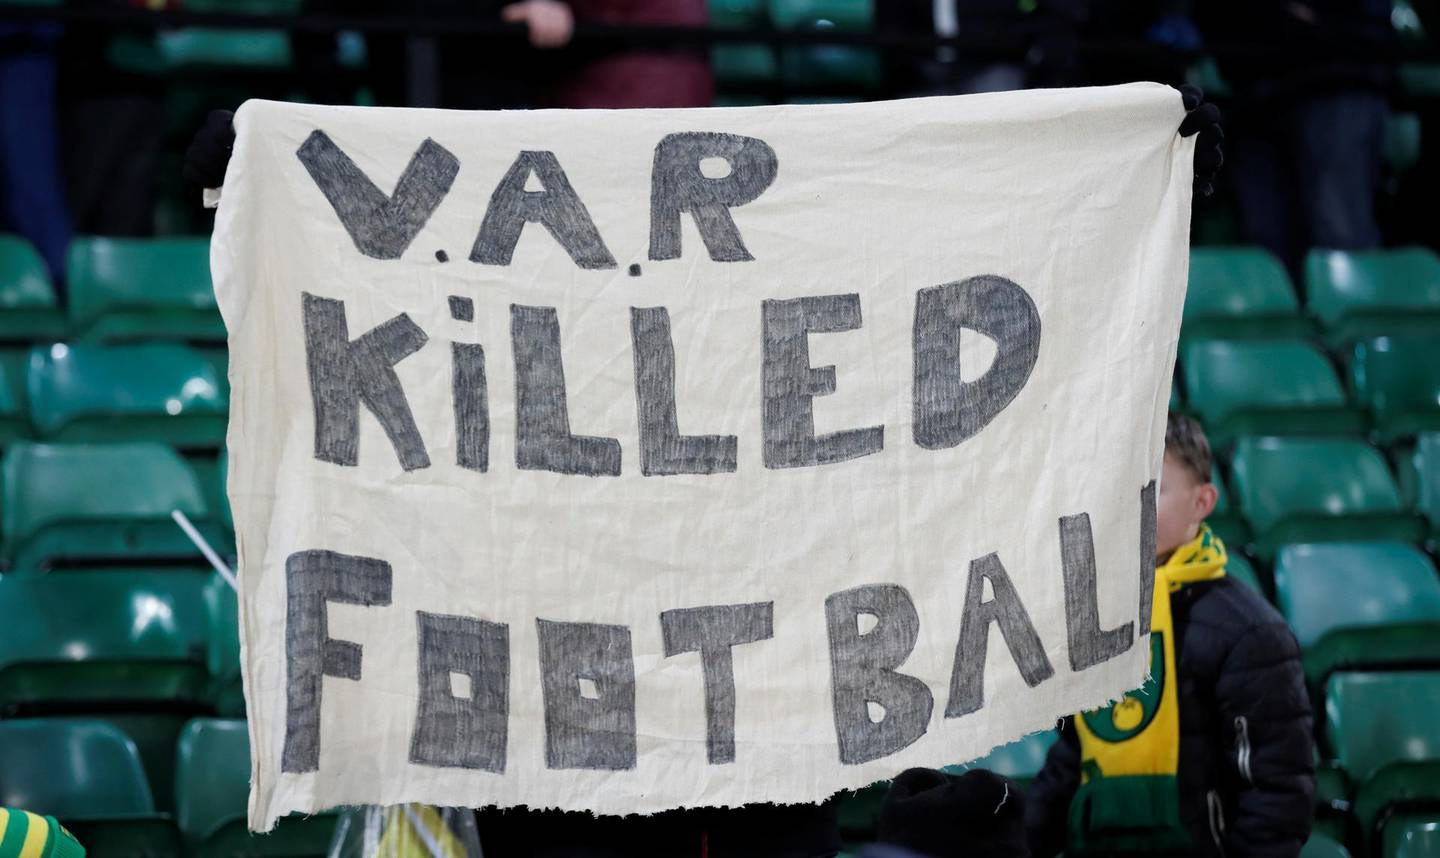 """Soccer Football - Premier League - Norwich City v Crystal Palace - Carrow Road, Norwich, Britain - January 1, 2020  Norwich City fans hold up a banner regarding VAR after the match     Action Images via Reuters/Peter Cziborra  EDITORIAL USE ONLY. No use with unauthorized audio, video, data, fixture lists, club/league logos or """"live"""" services. Online in-match use limited to 75 images, no video emulation. No use in betting, games or single club/league/player publications.  Please contact your account representative for further details."""